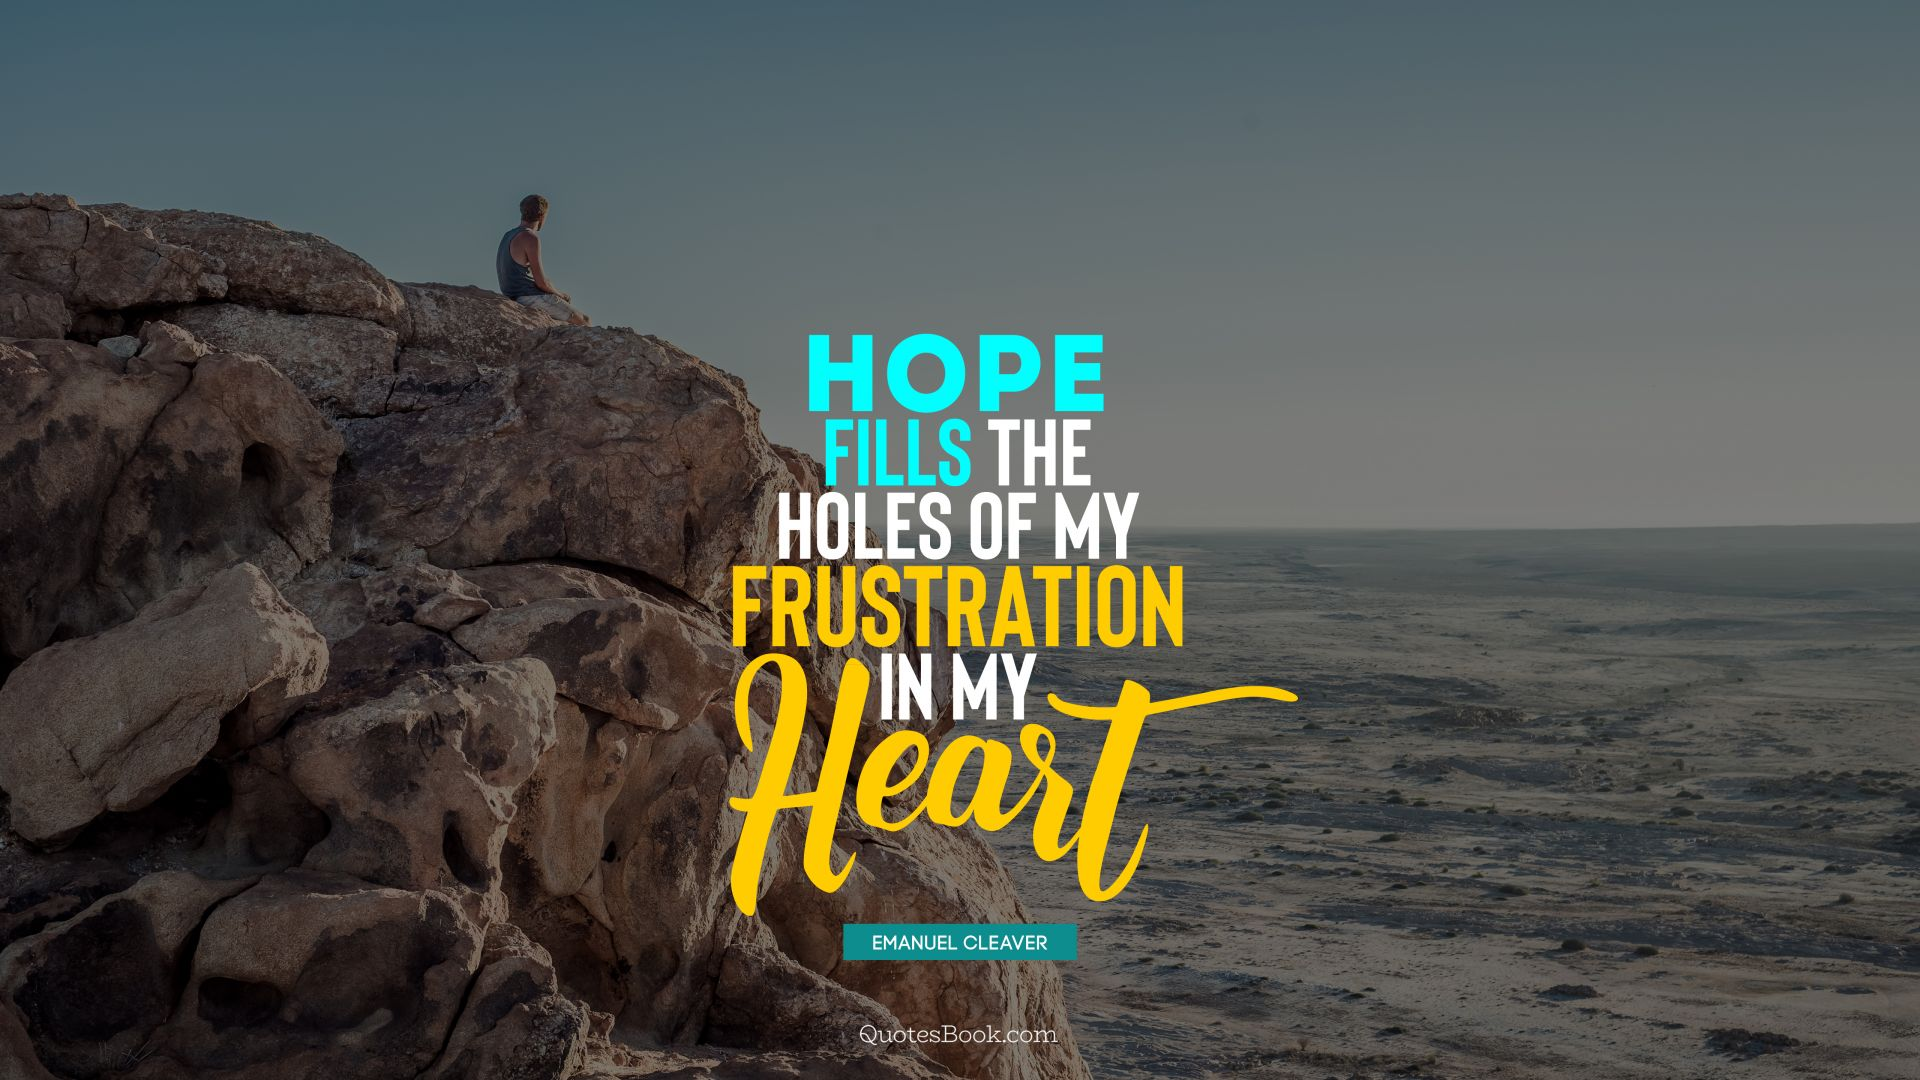 Hope fills the holes of my frustration in my heart. - Quote by Emanuel Cleaver